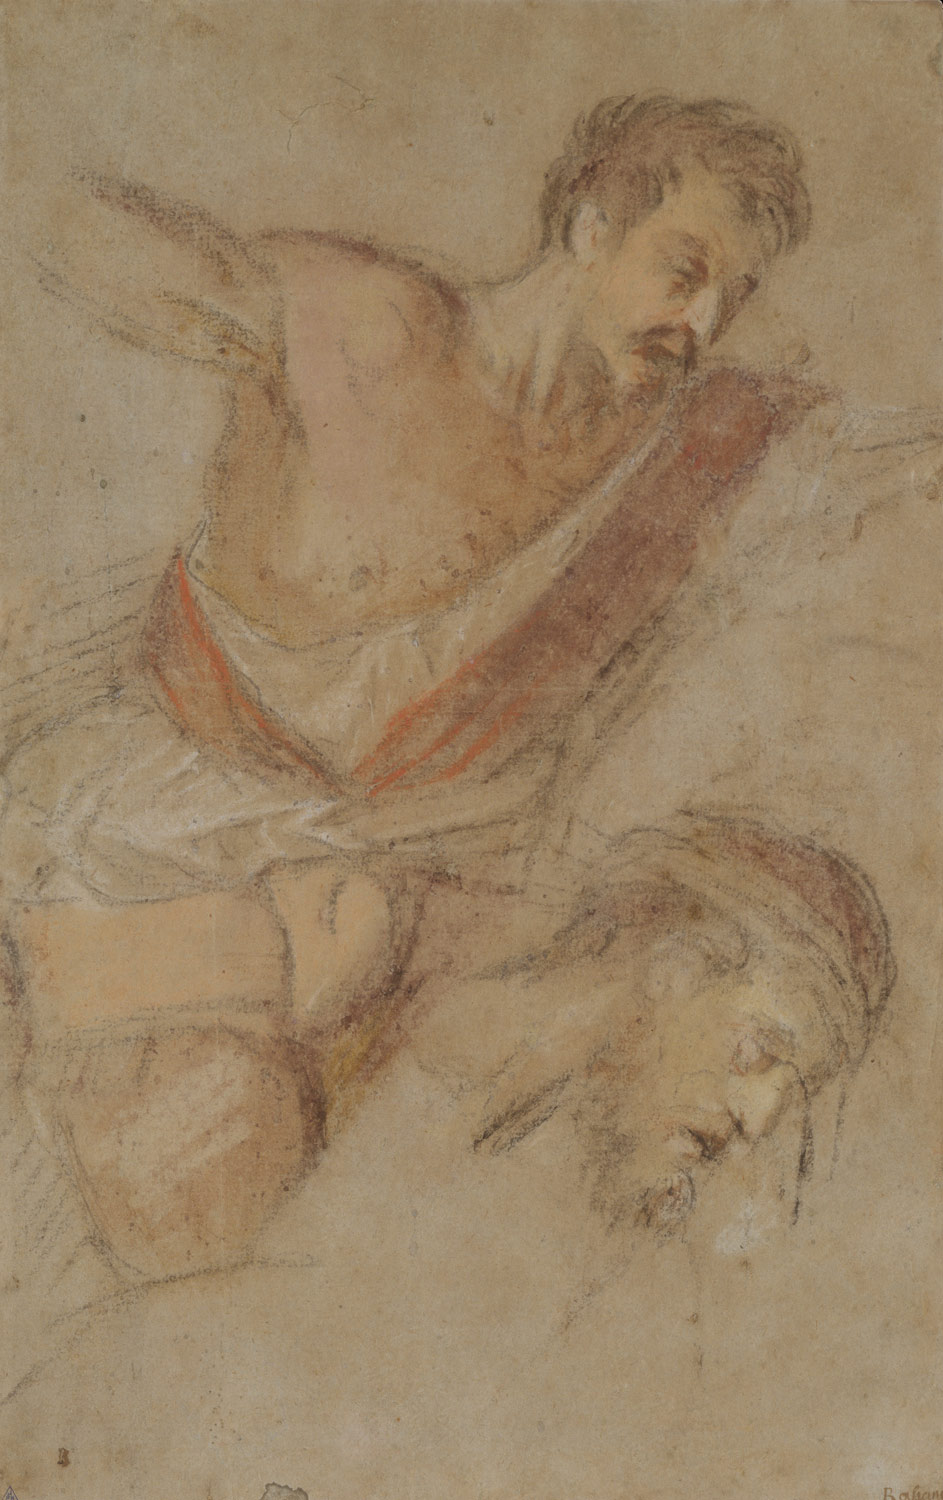 Studies for a Scourging Soldier and the Head of Christ